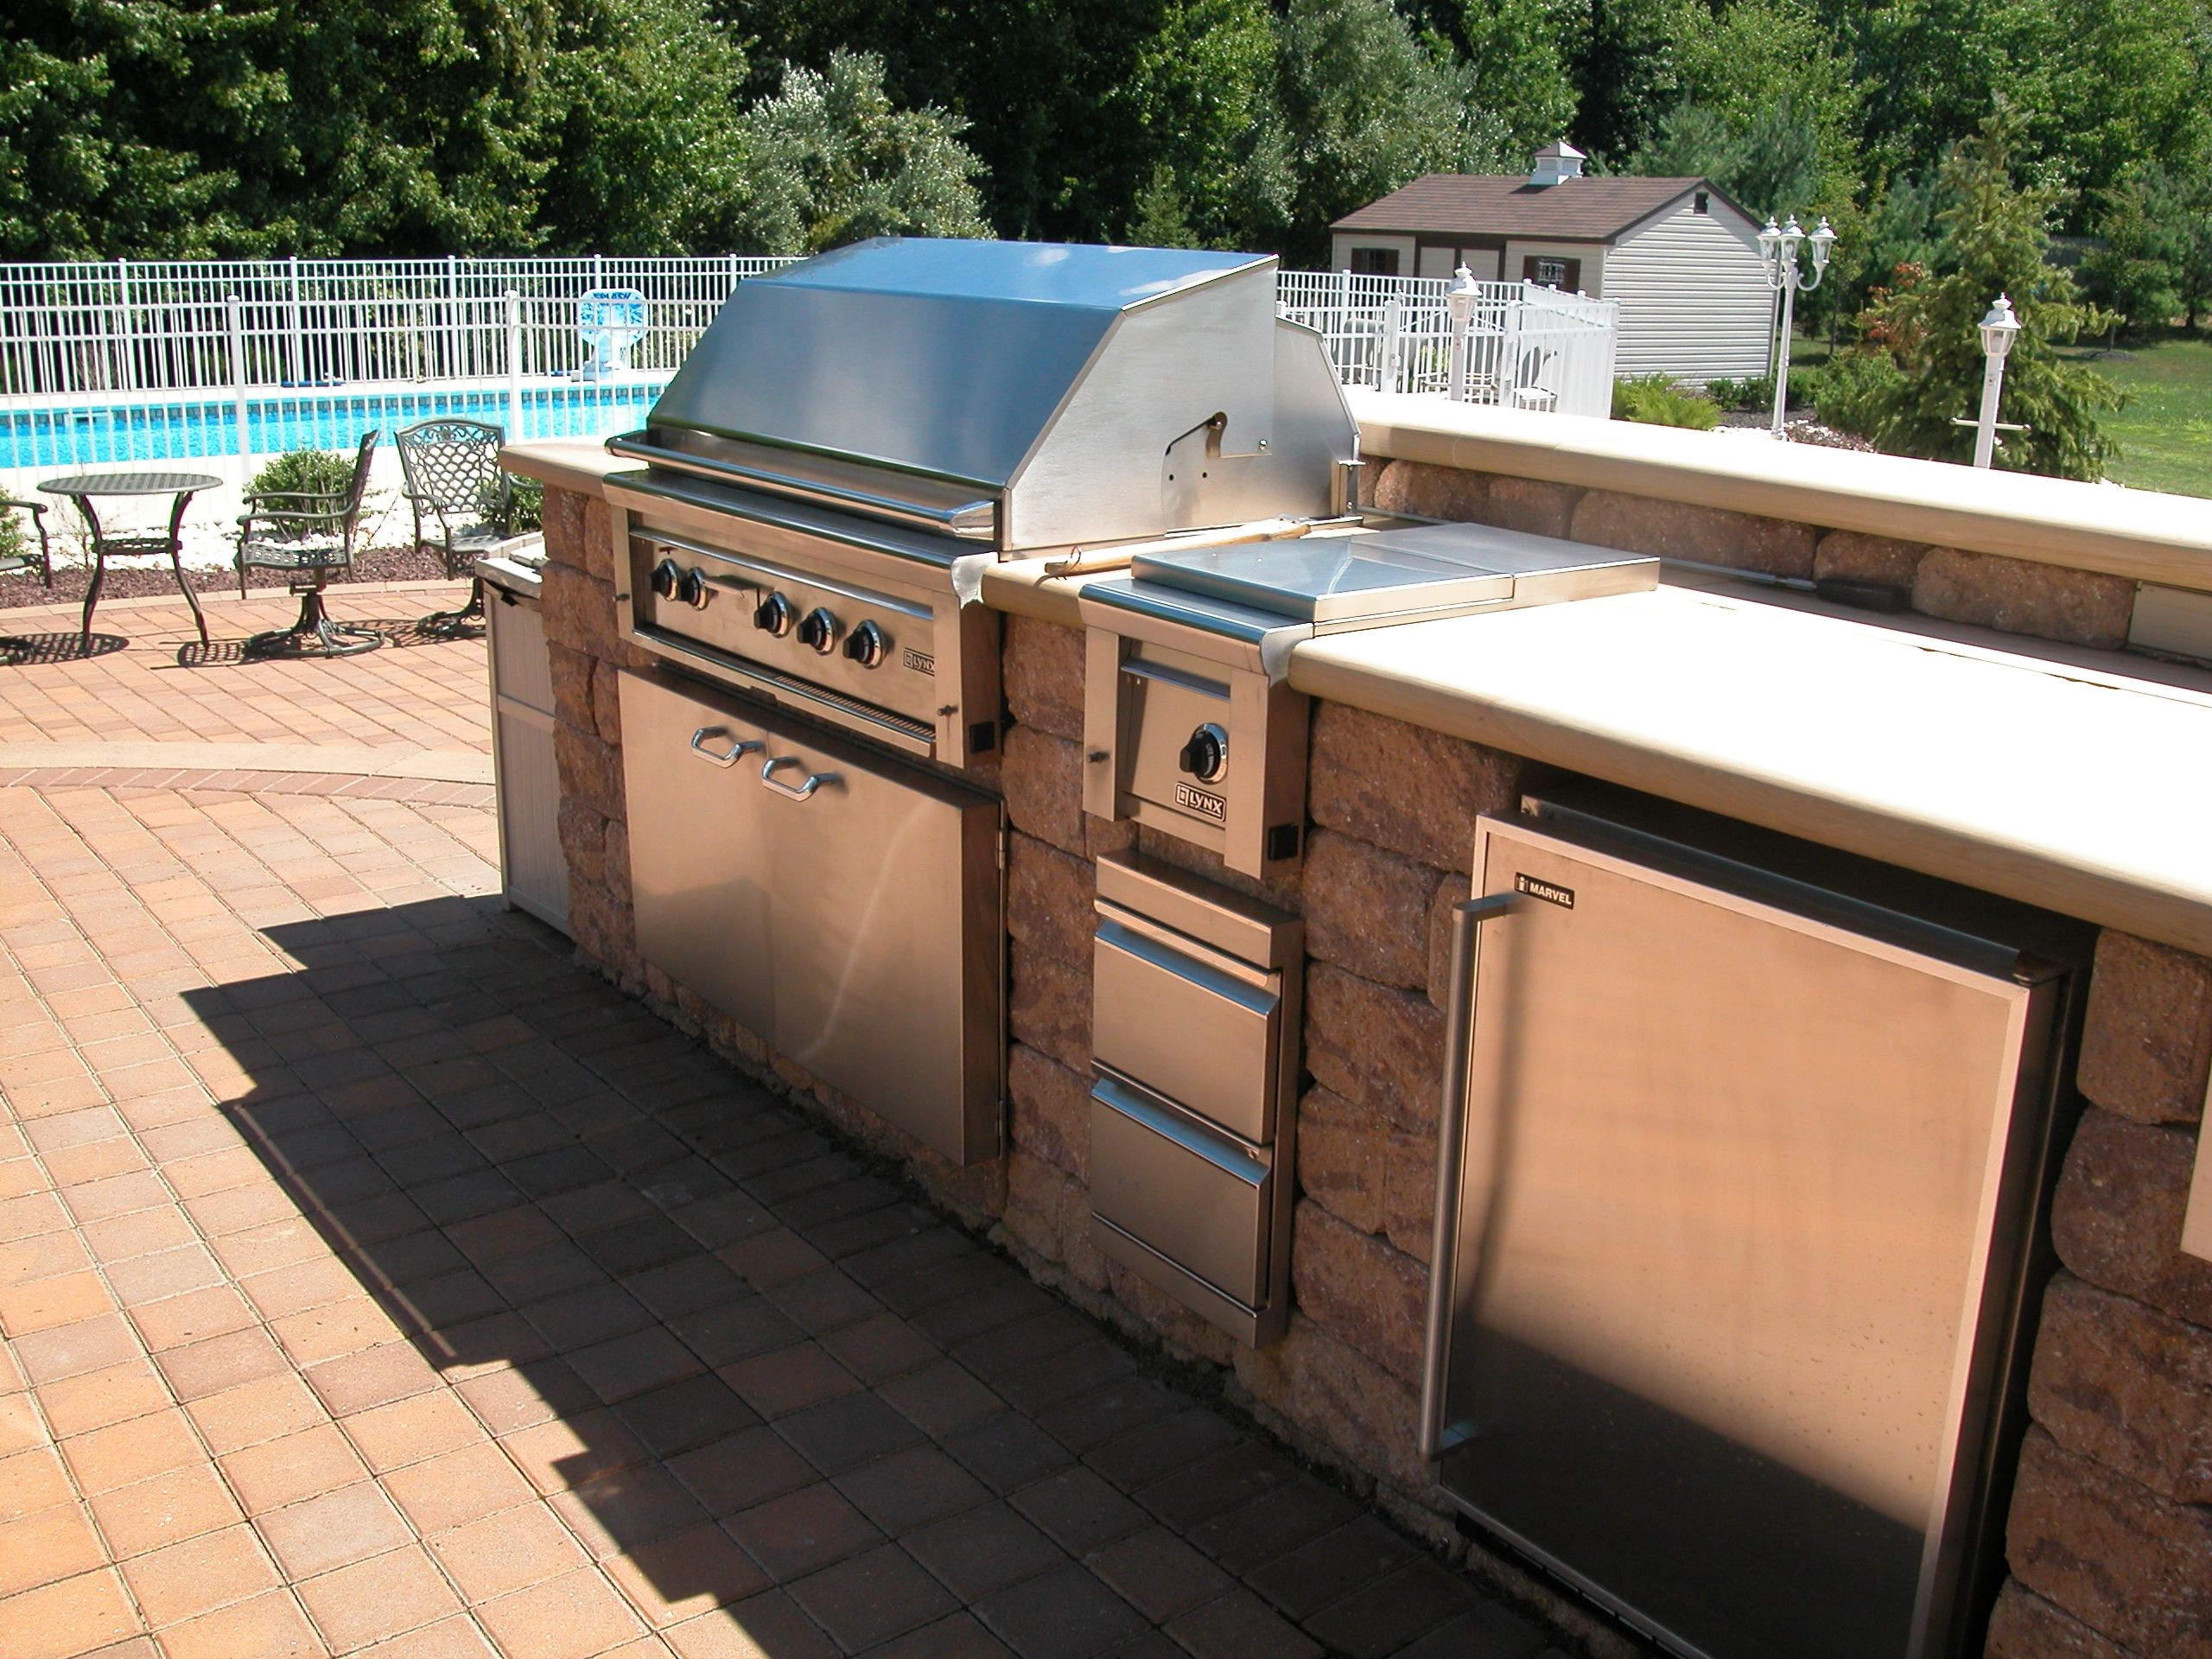 Lynx Outdoor Kitchen Grill Find Grill & Outdoor Cooking is very